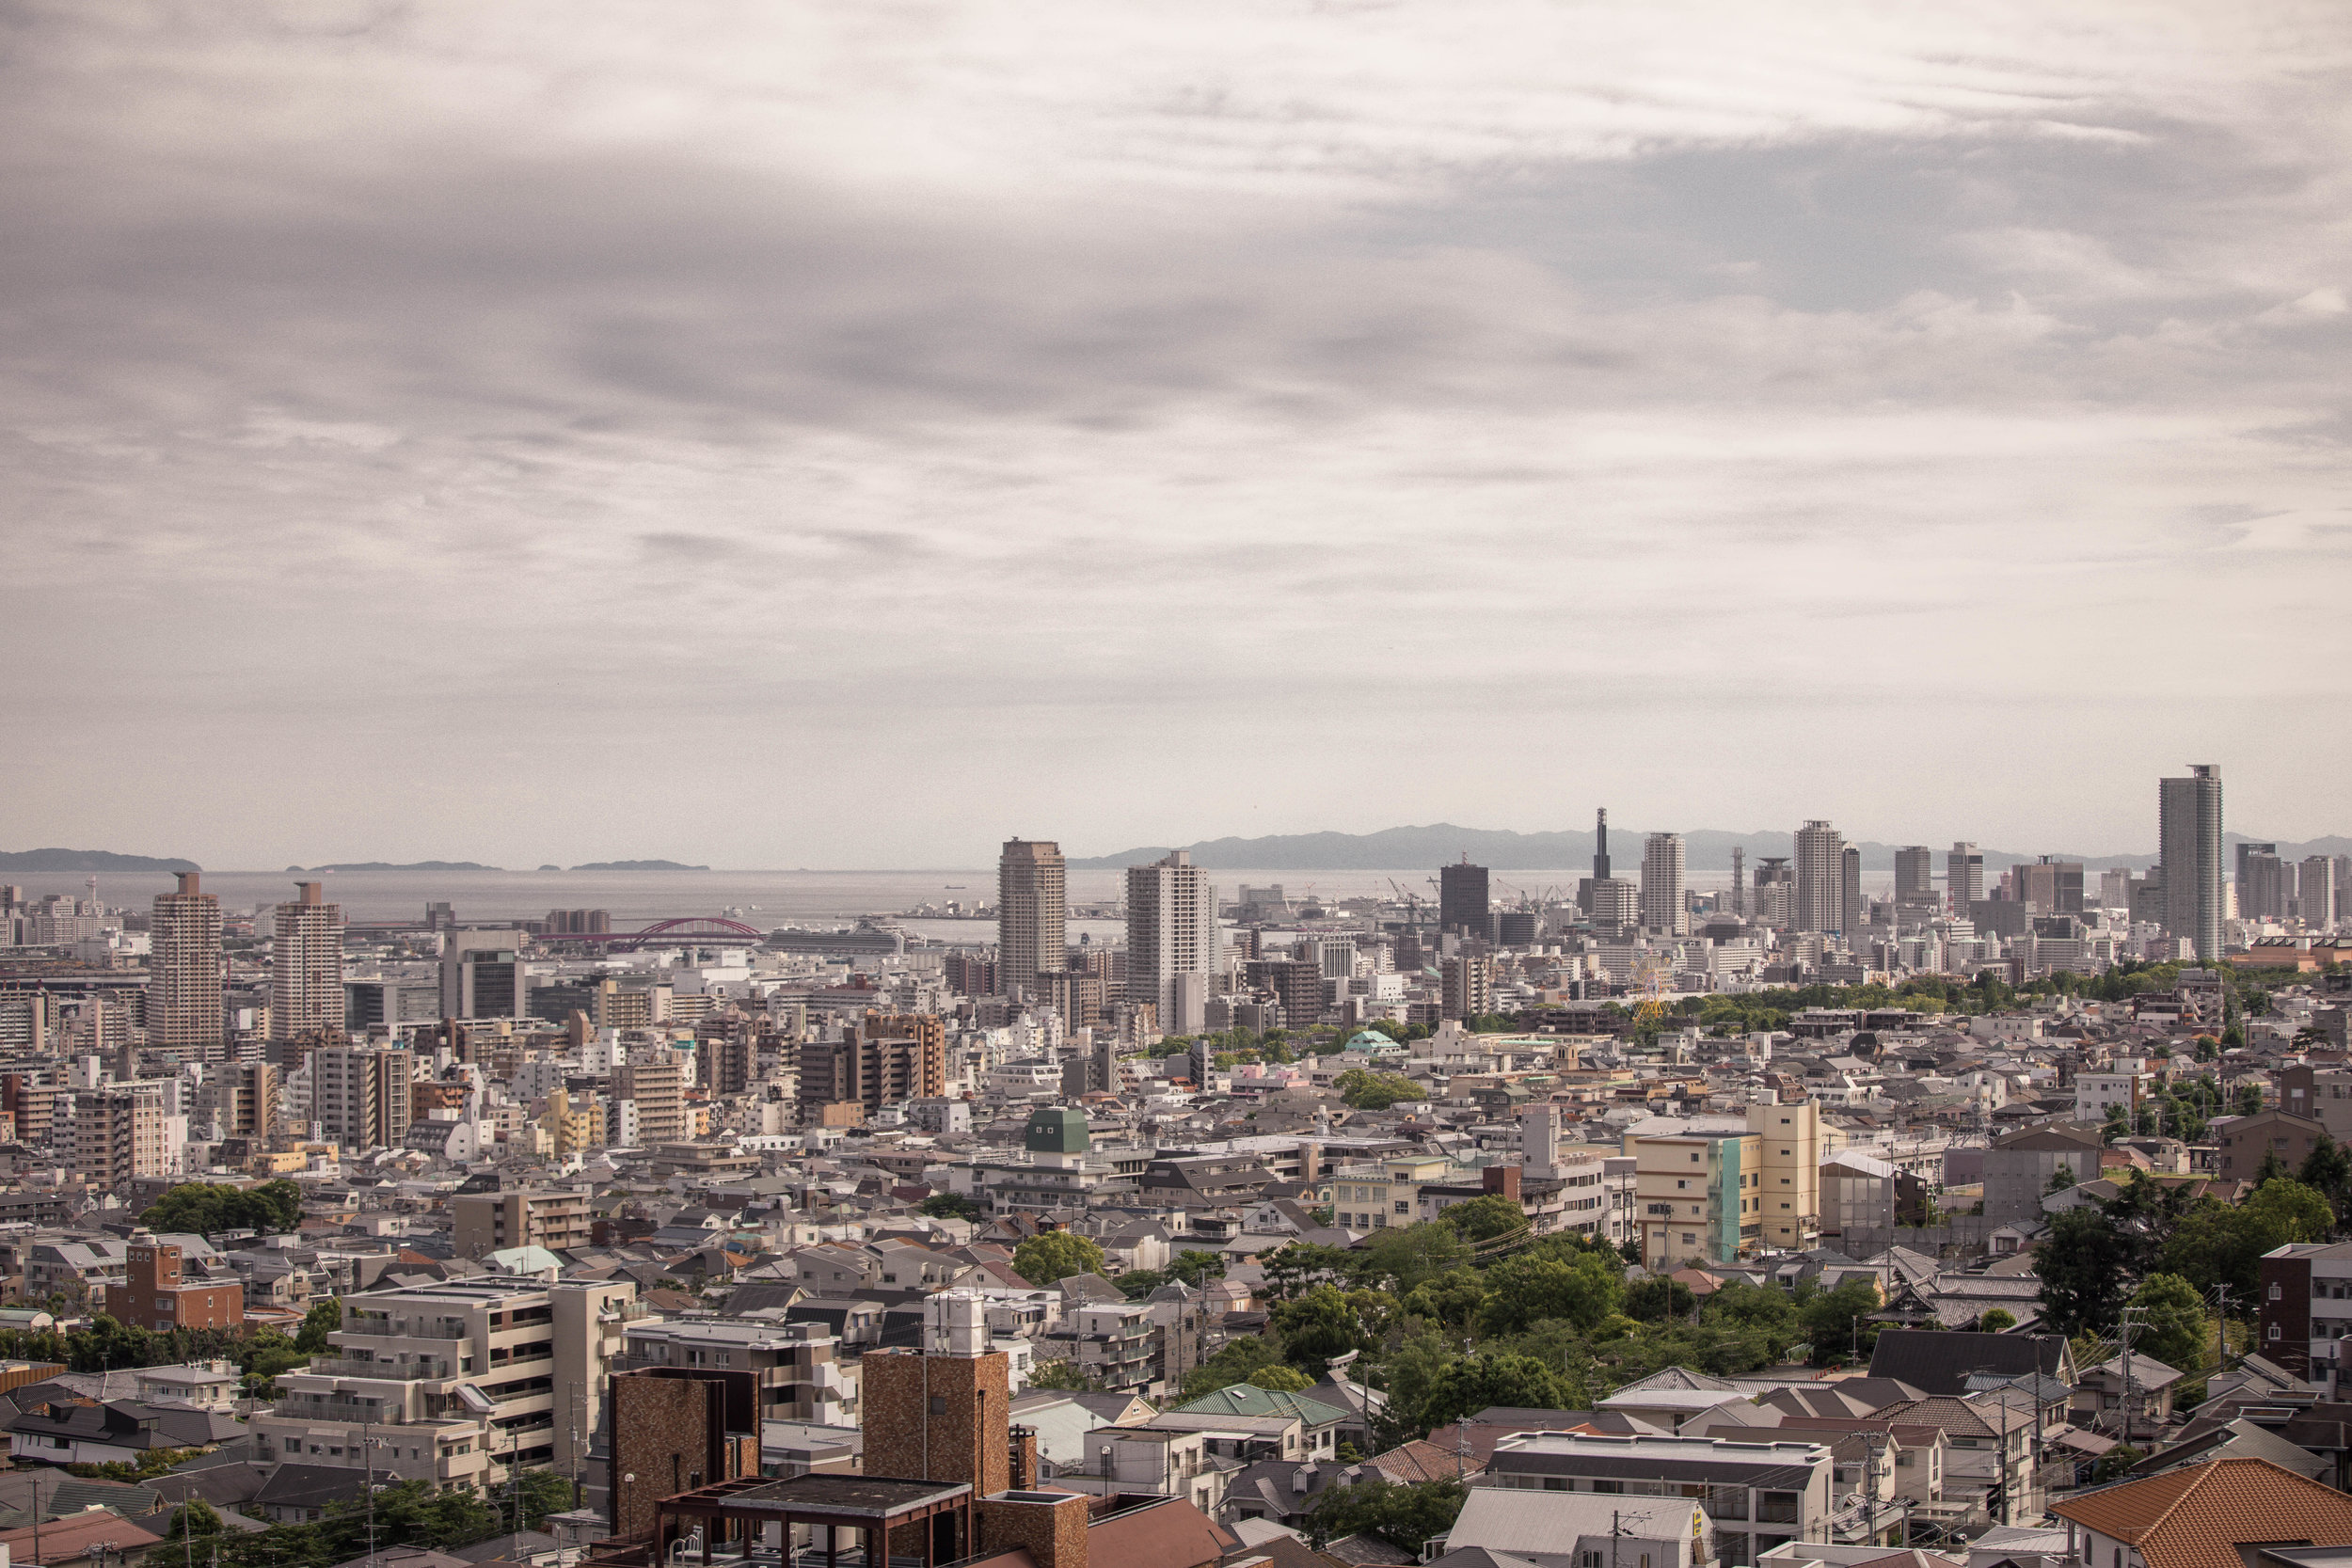 A view of Kobe, overlooking Oji park, with Sannomiya and Motomachi beyond it